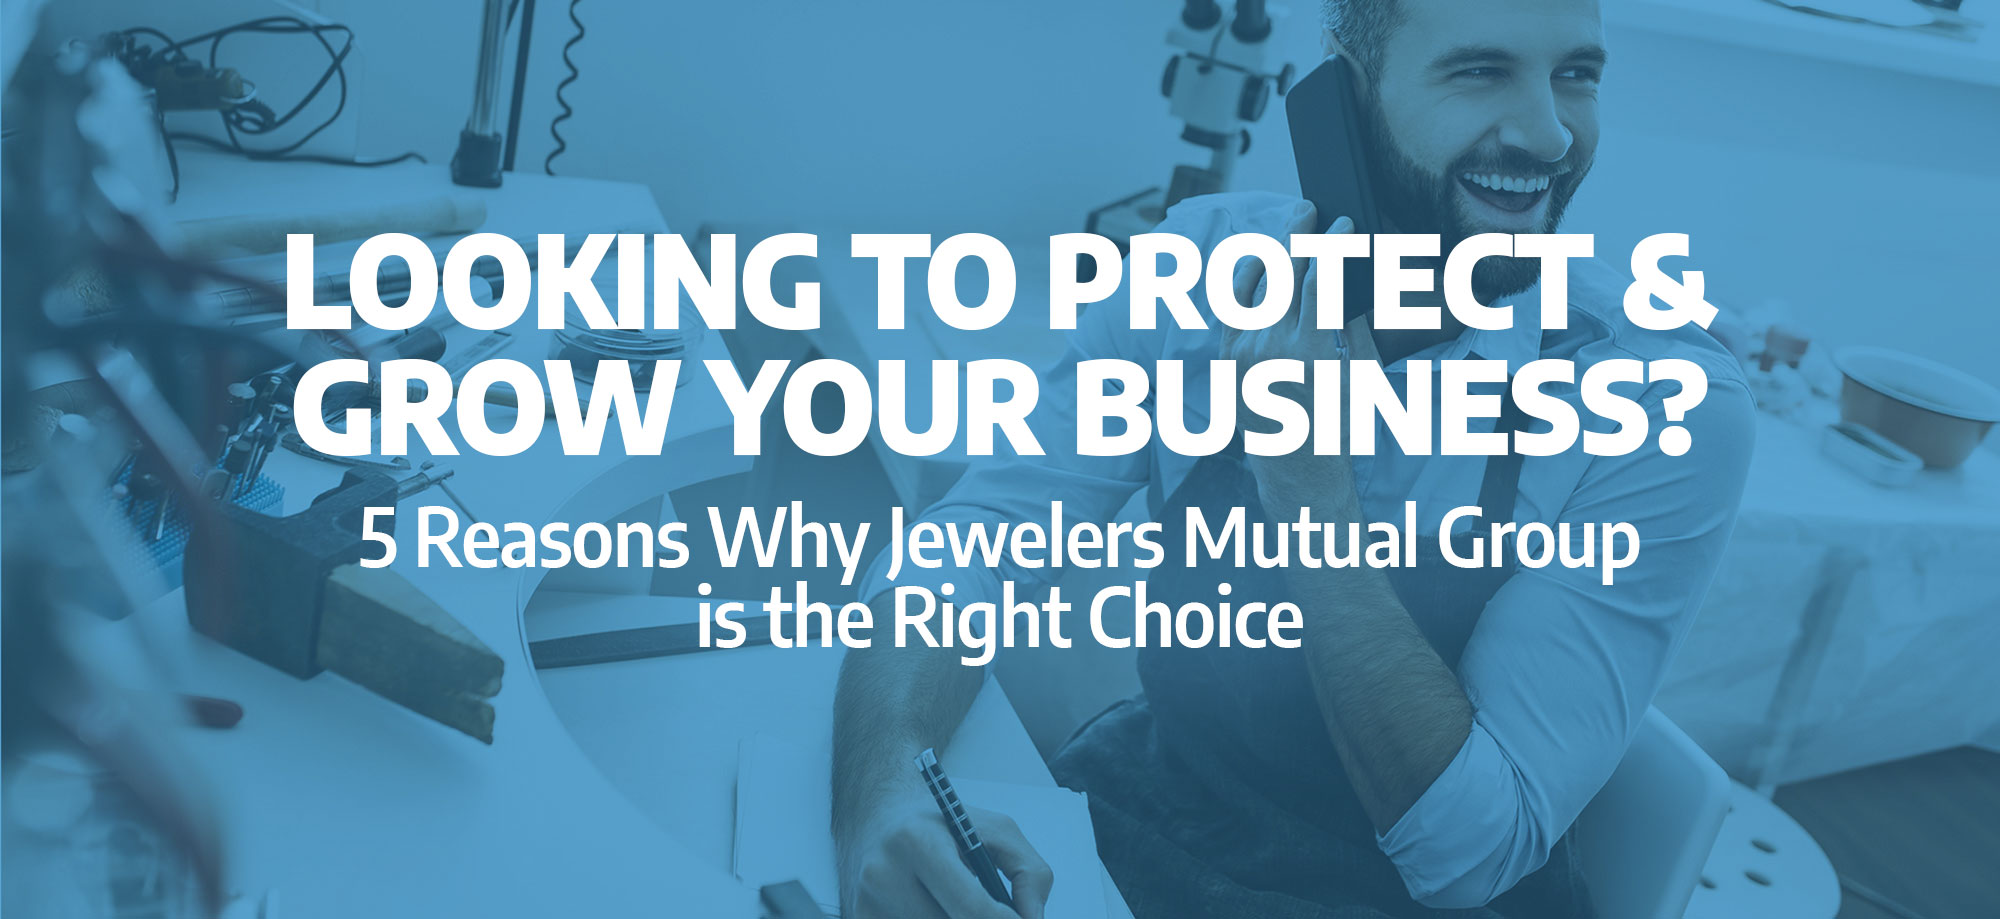 Looking to Protect & Grow Your Business?